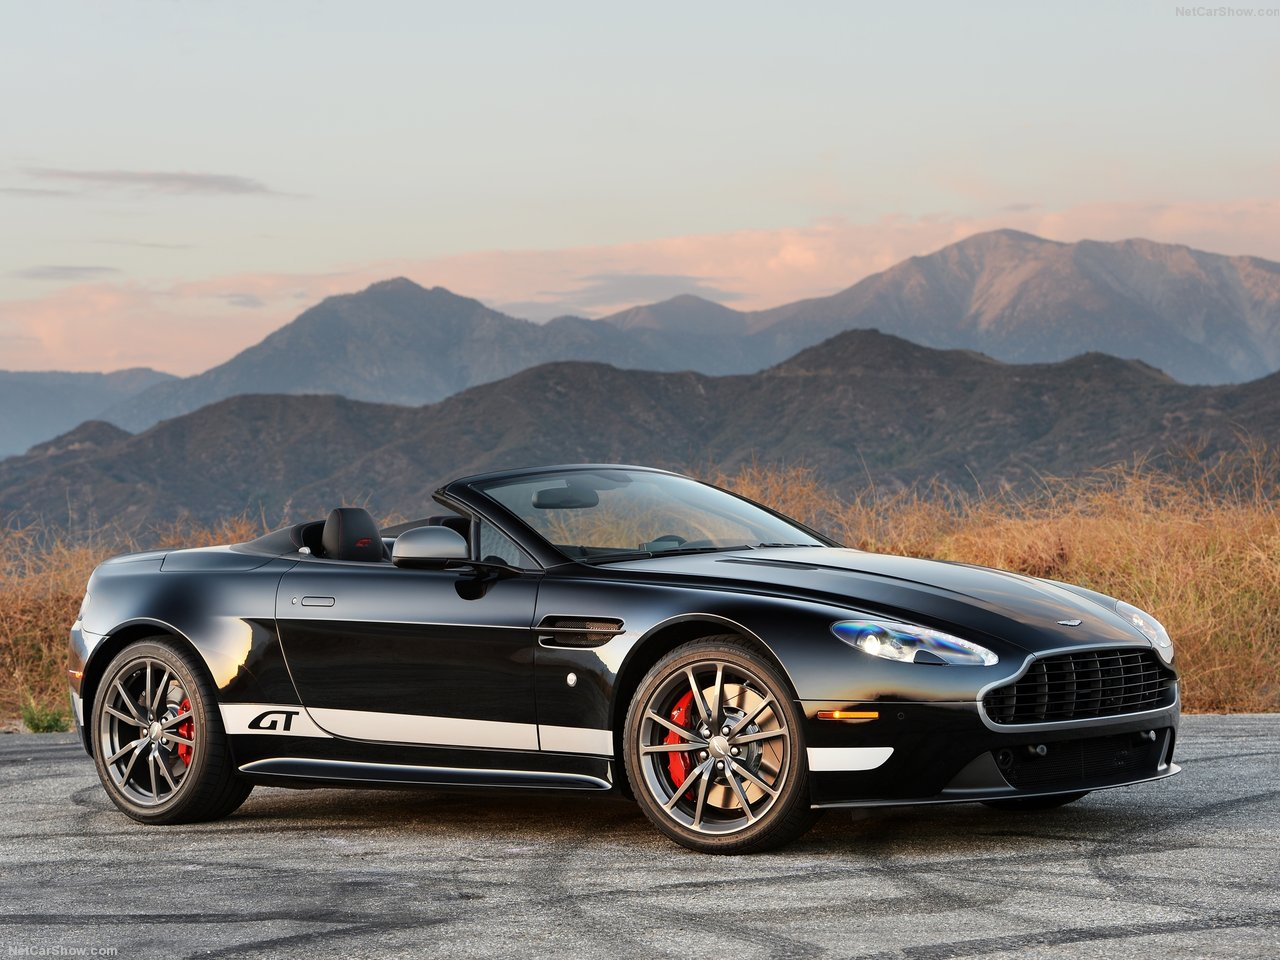 Aston Martin V8 Vantage GT Roadster photo 138302